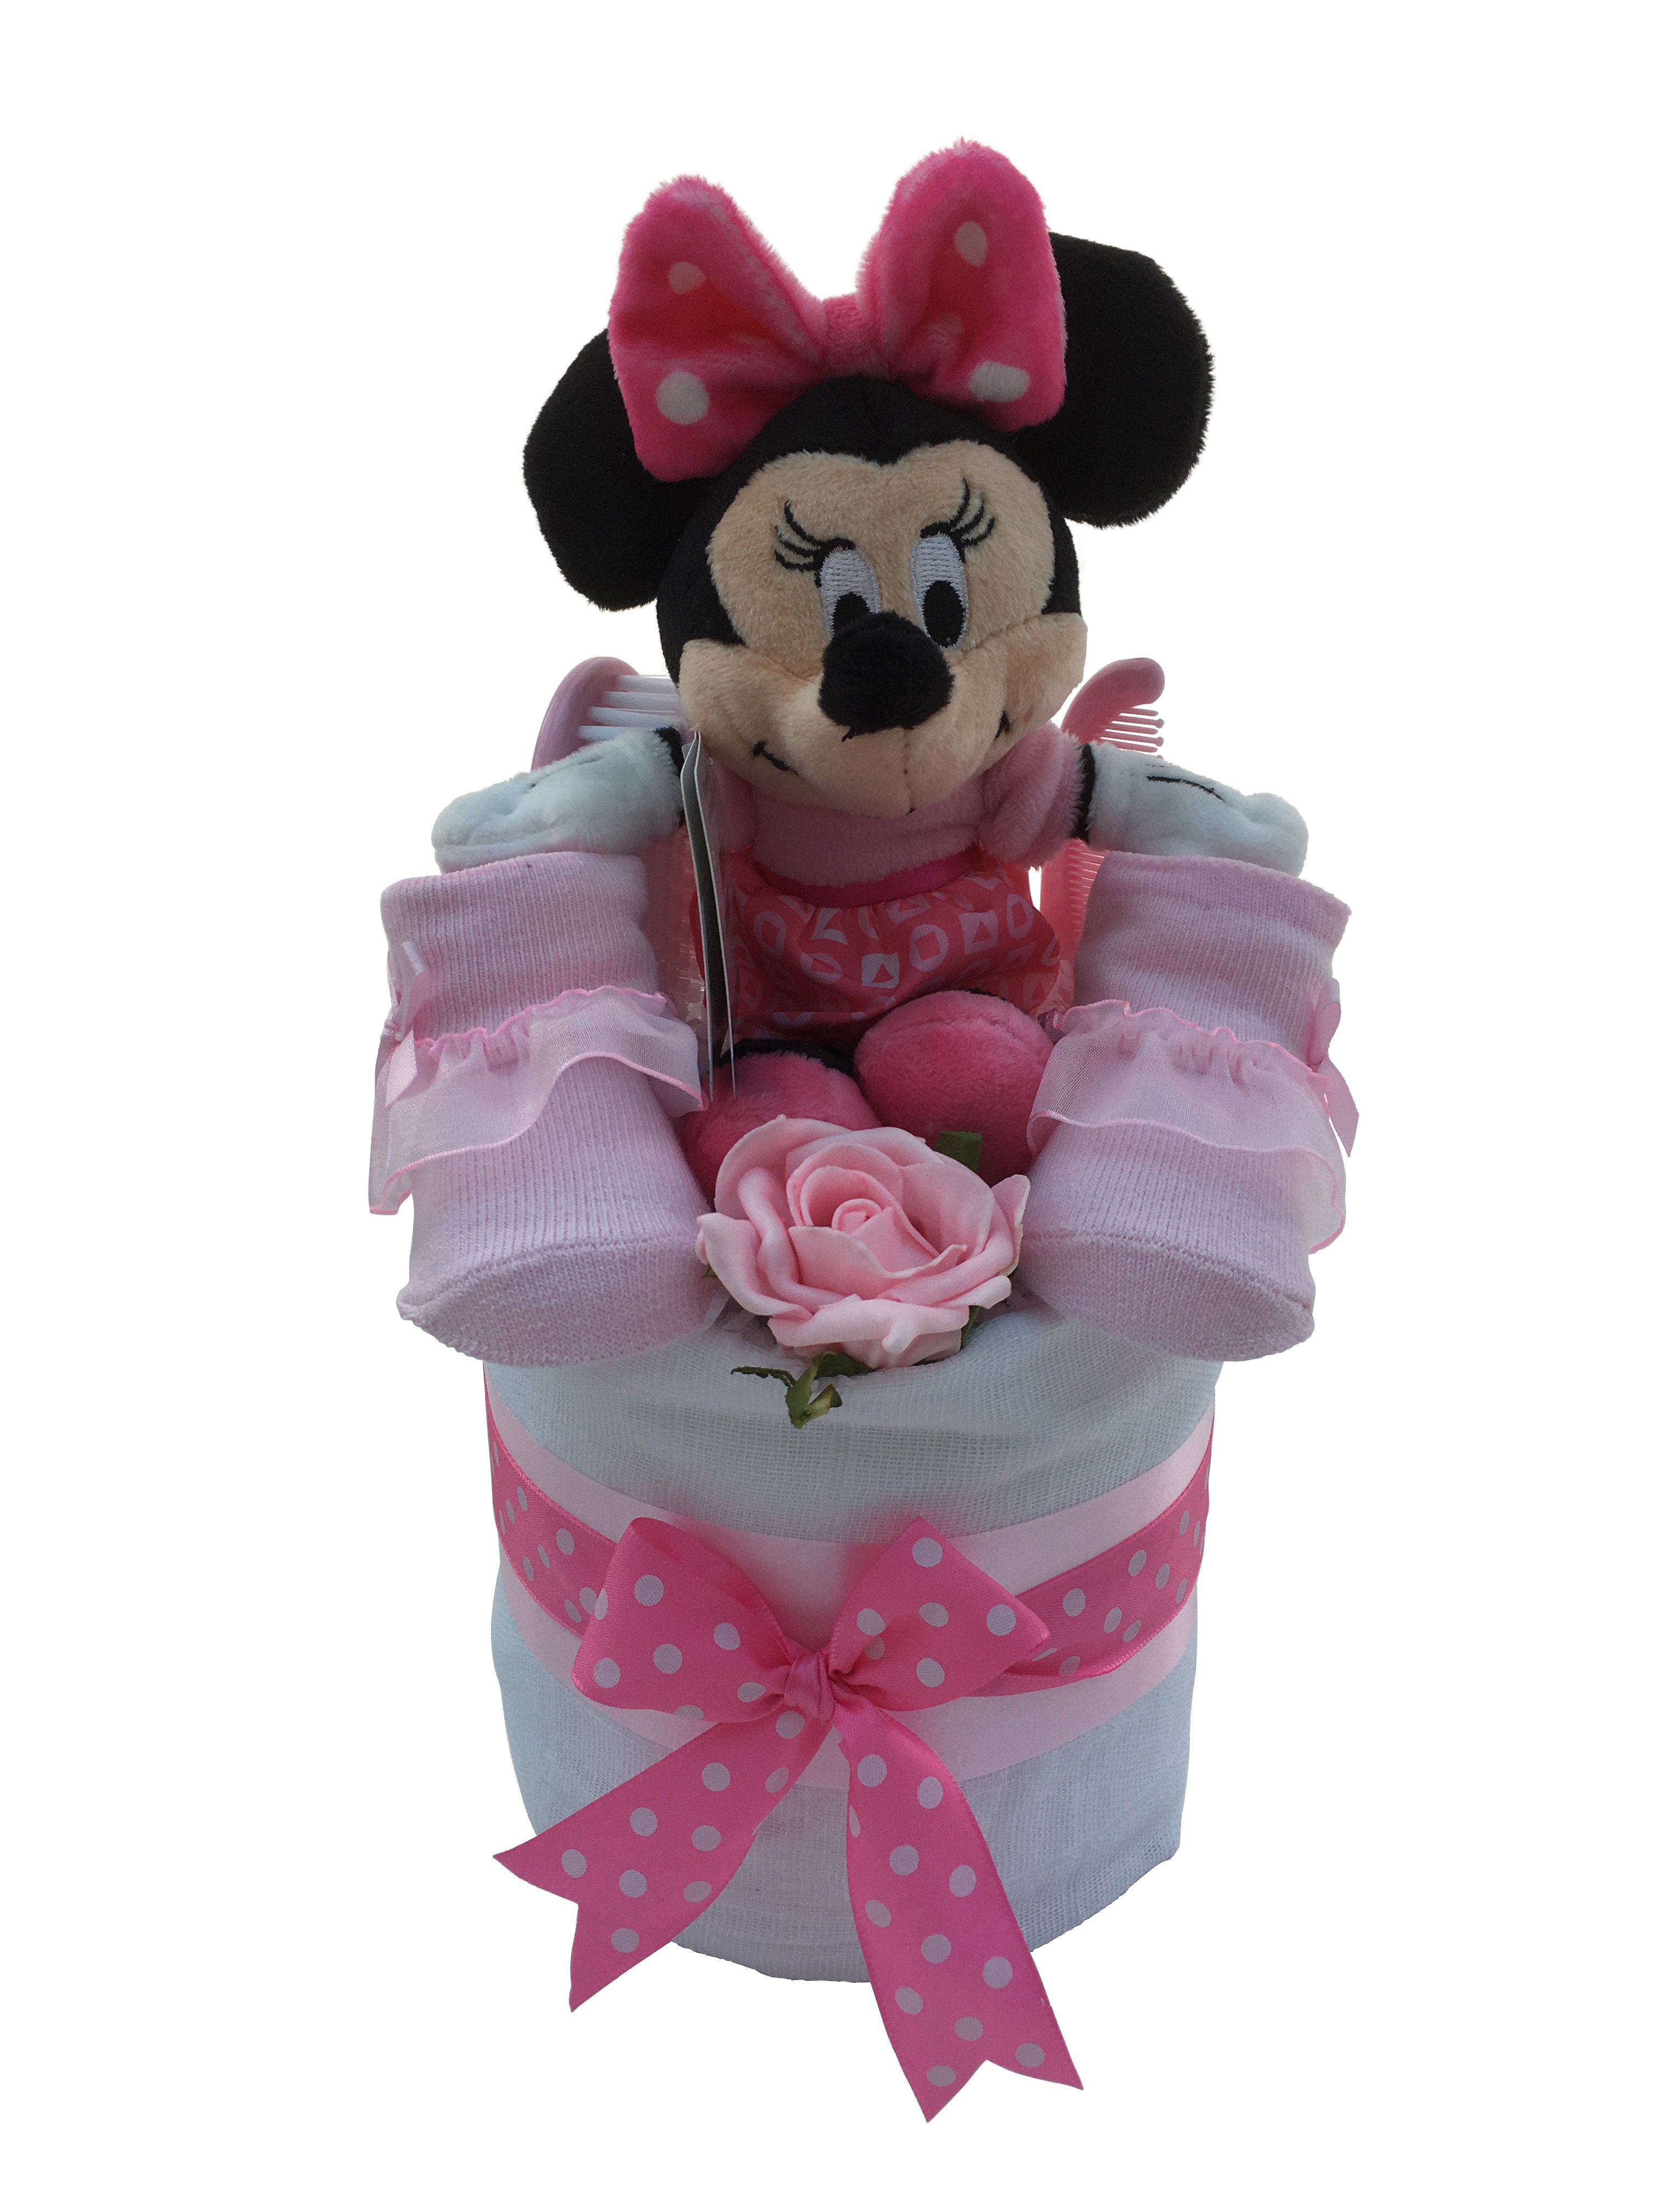 Minnie Mouse Mini Nappy Cake Truly Gifts Uk